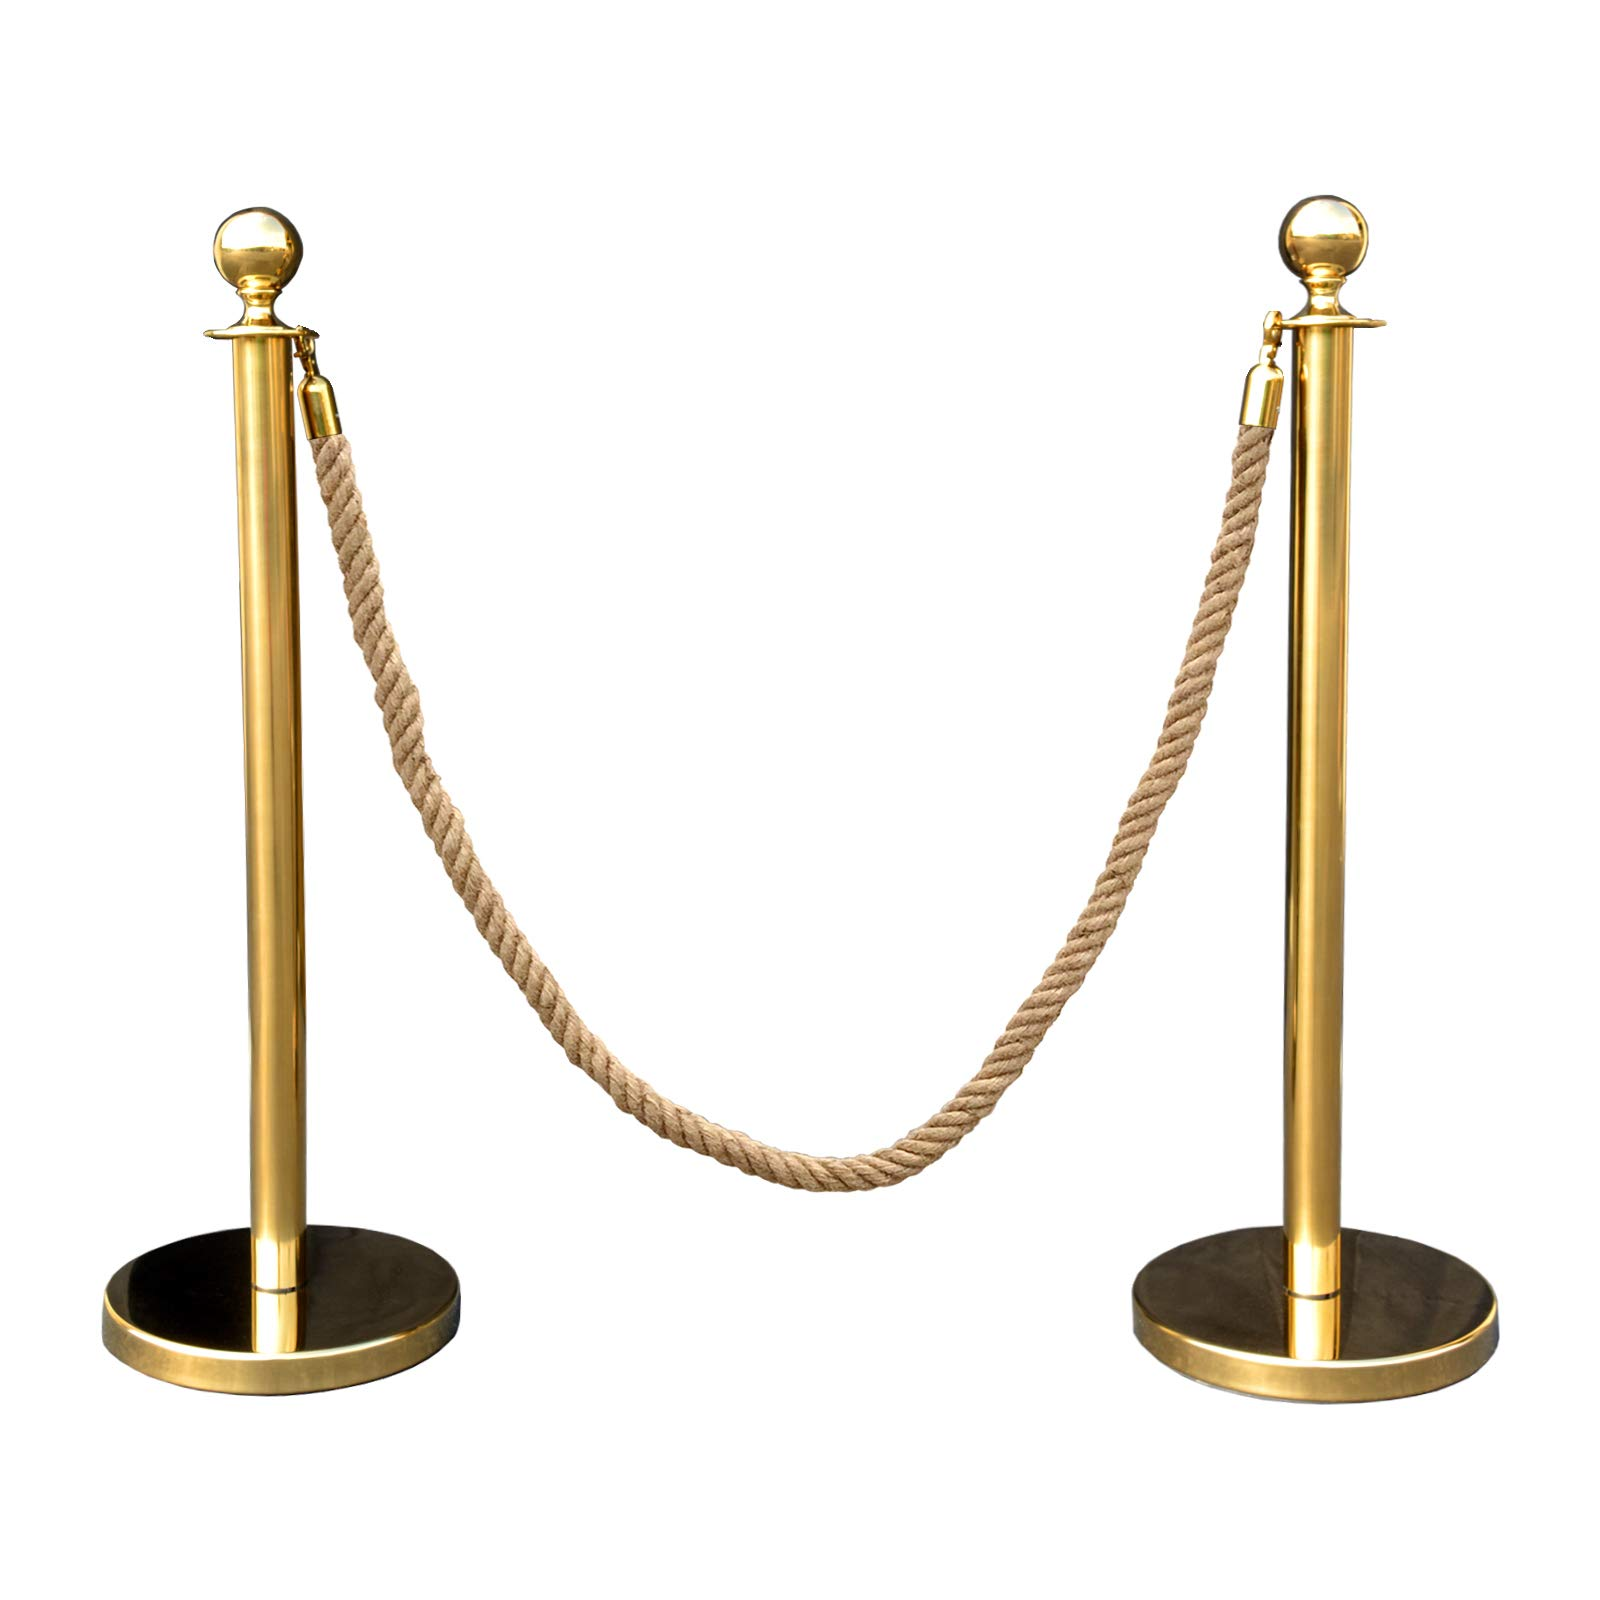 Gold Crown Top Decorative Rope Safety Queue Stanchion Barrier in 3 pcs Set, VIP Crowd Control (72'' Hemp Braided)